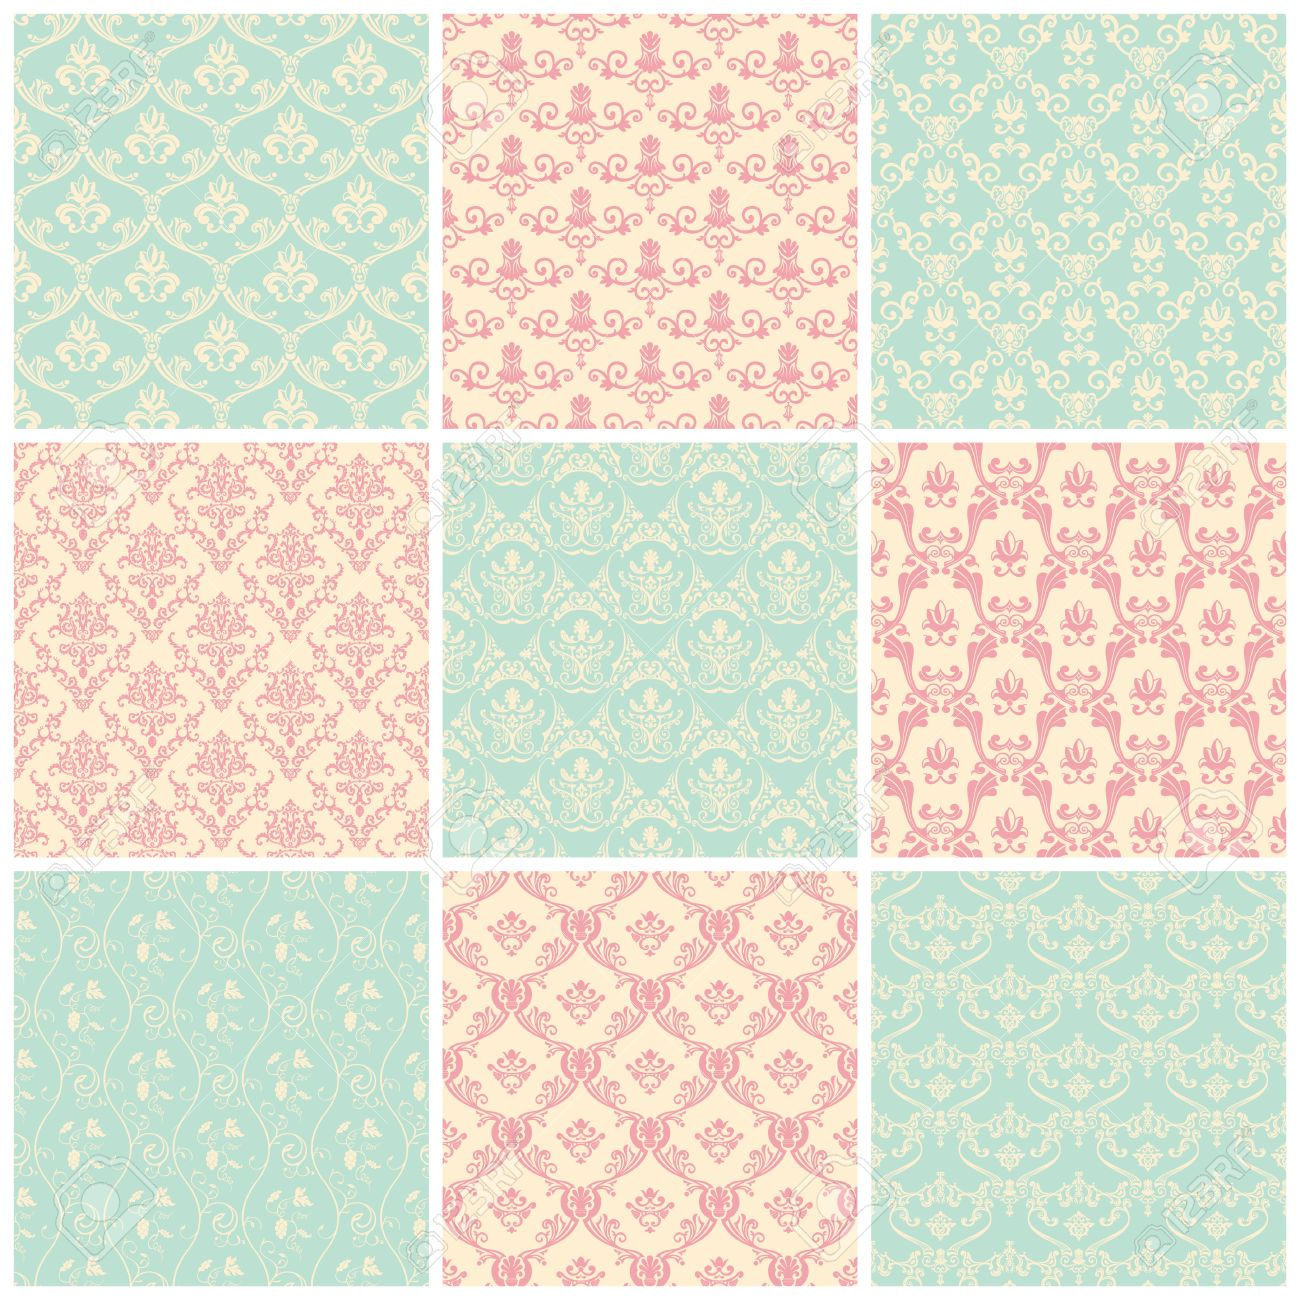 Backgrounds Set Seamless Wallpaper Floral Vintage Pastel Colors